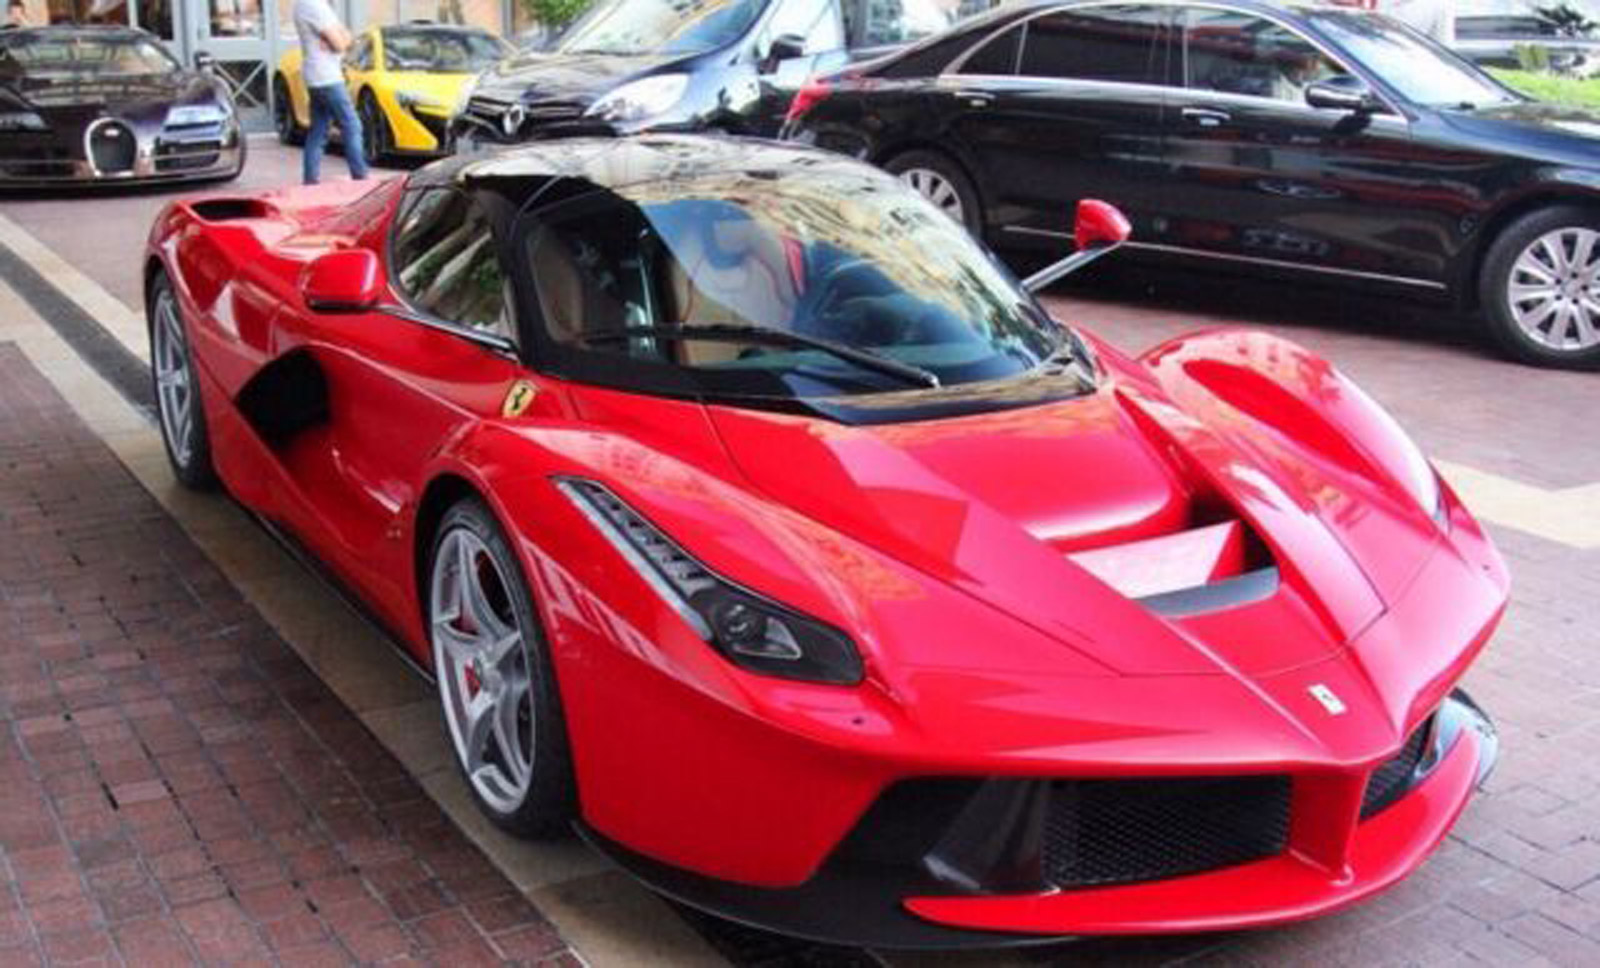 Nissan Dealership Los Angeles >> Another LaFerrari Up For Sale, This Time In Germany